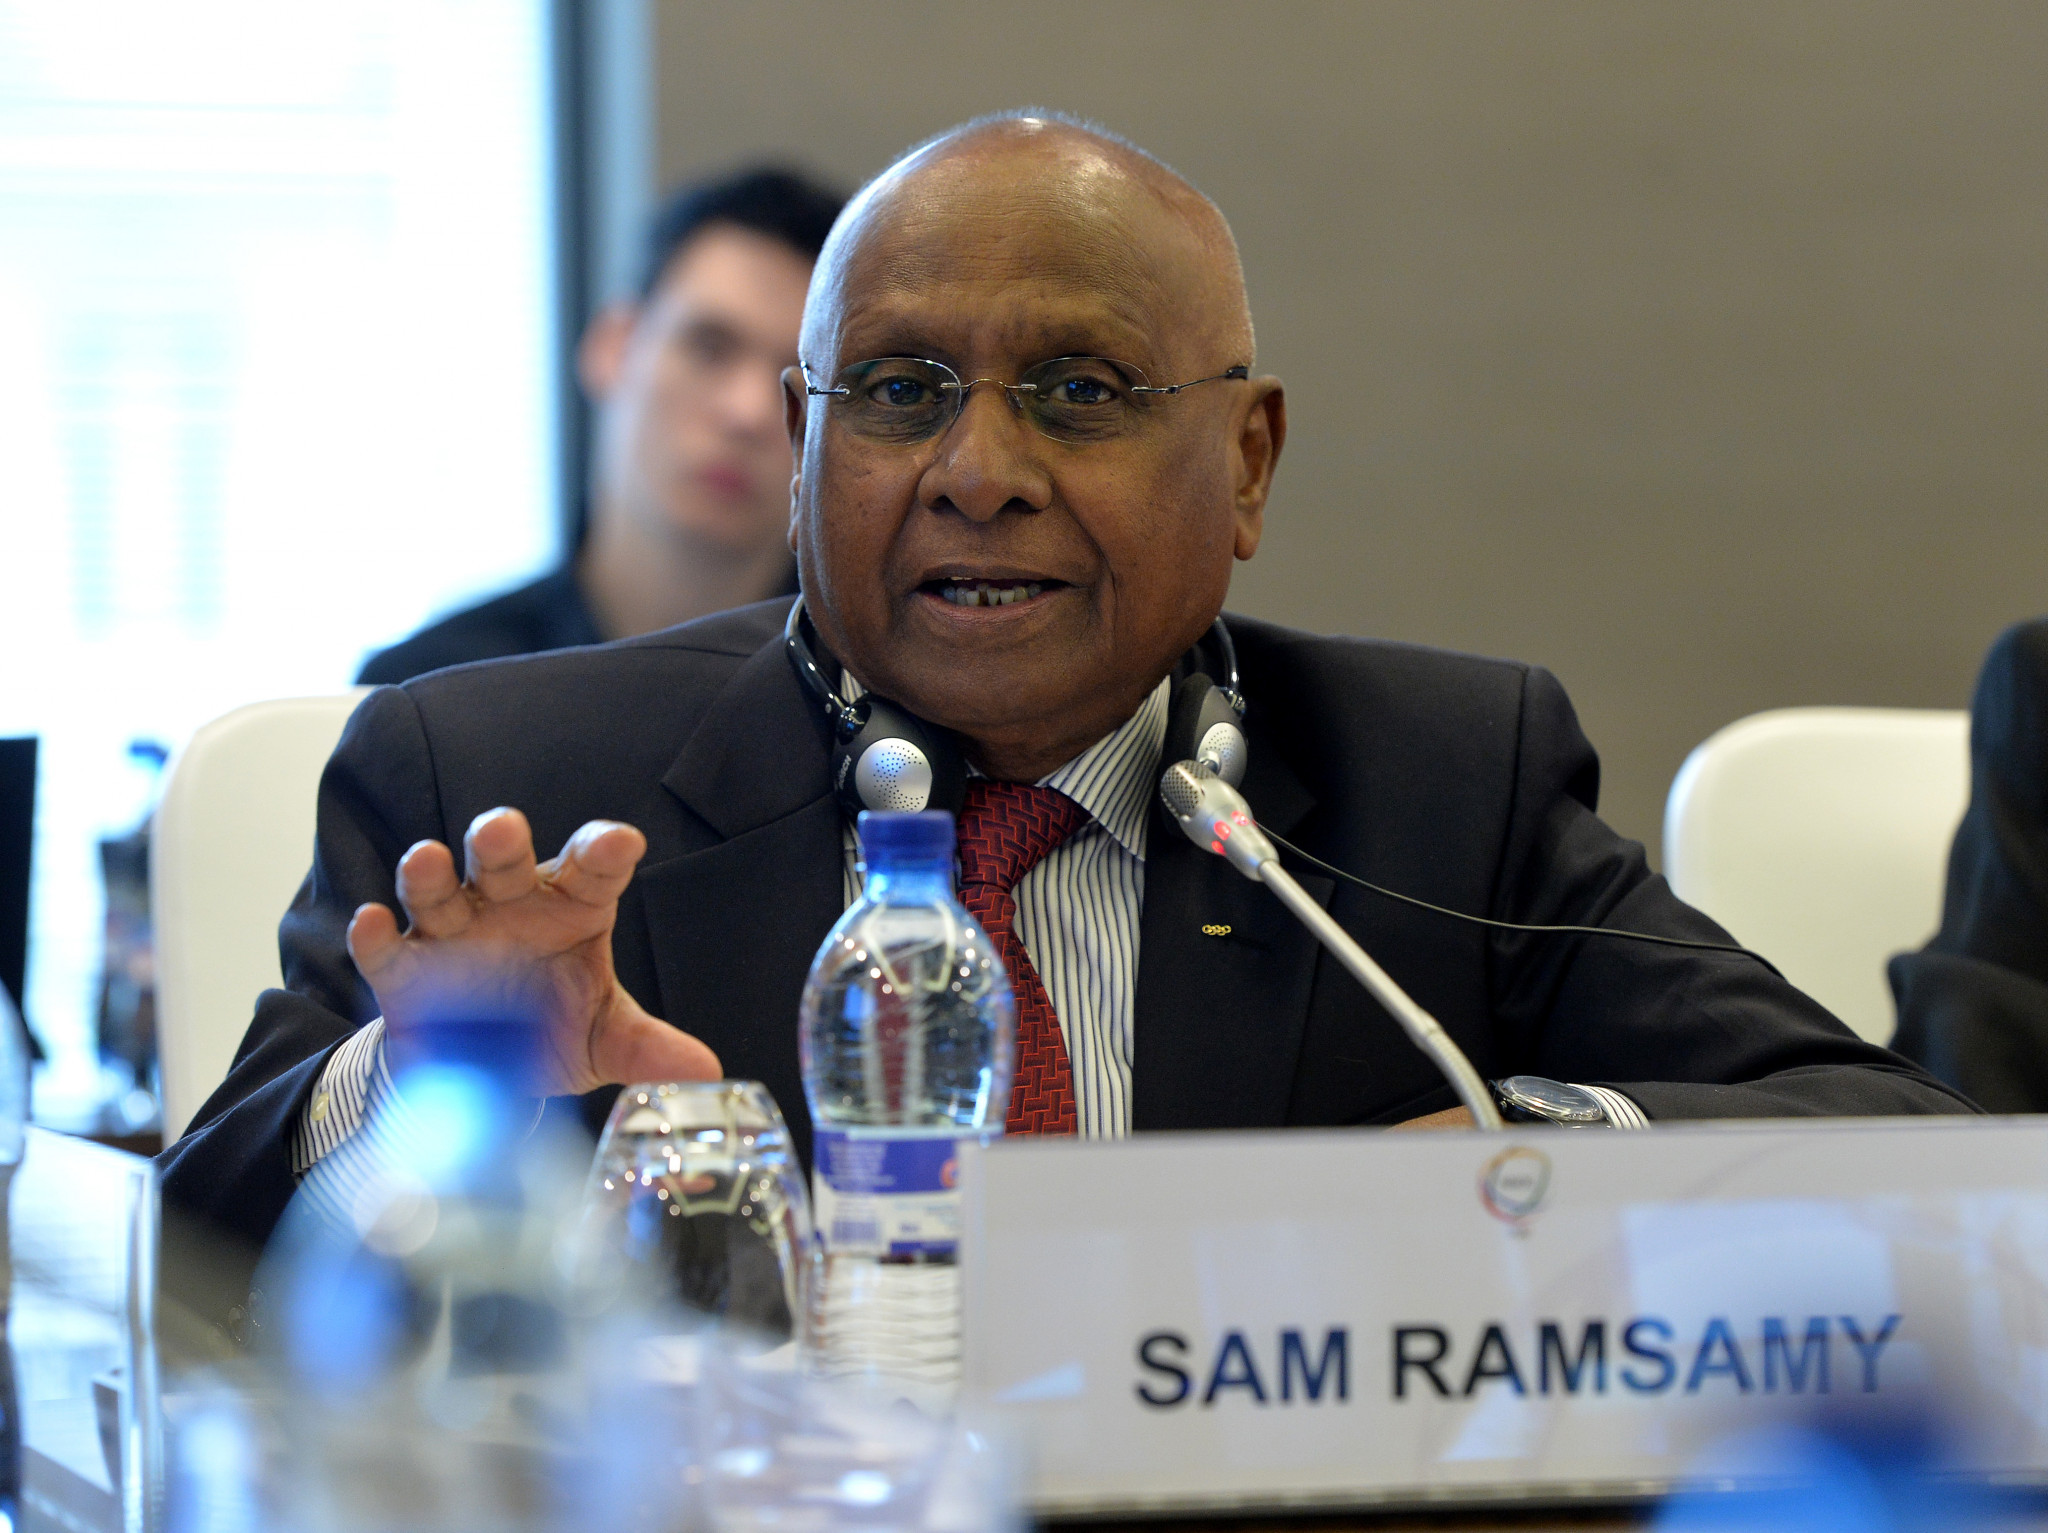 Ramsamy sent by IOC to observe National Olympic Committee of Kenya elections